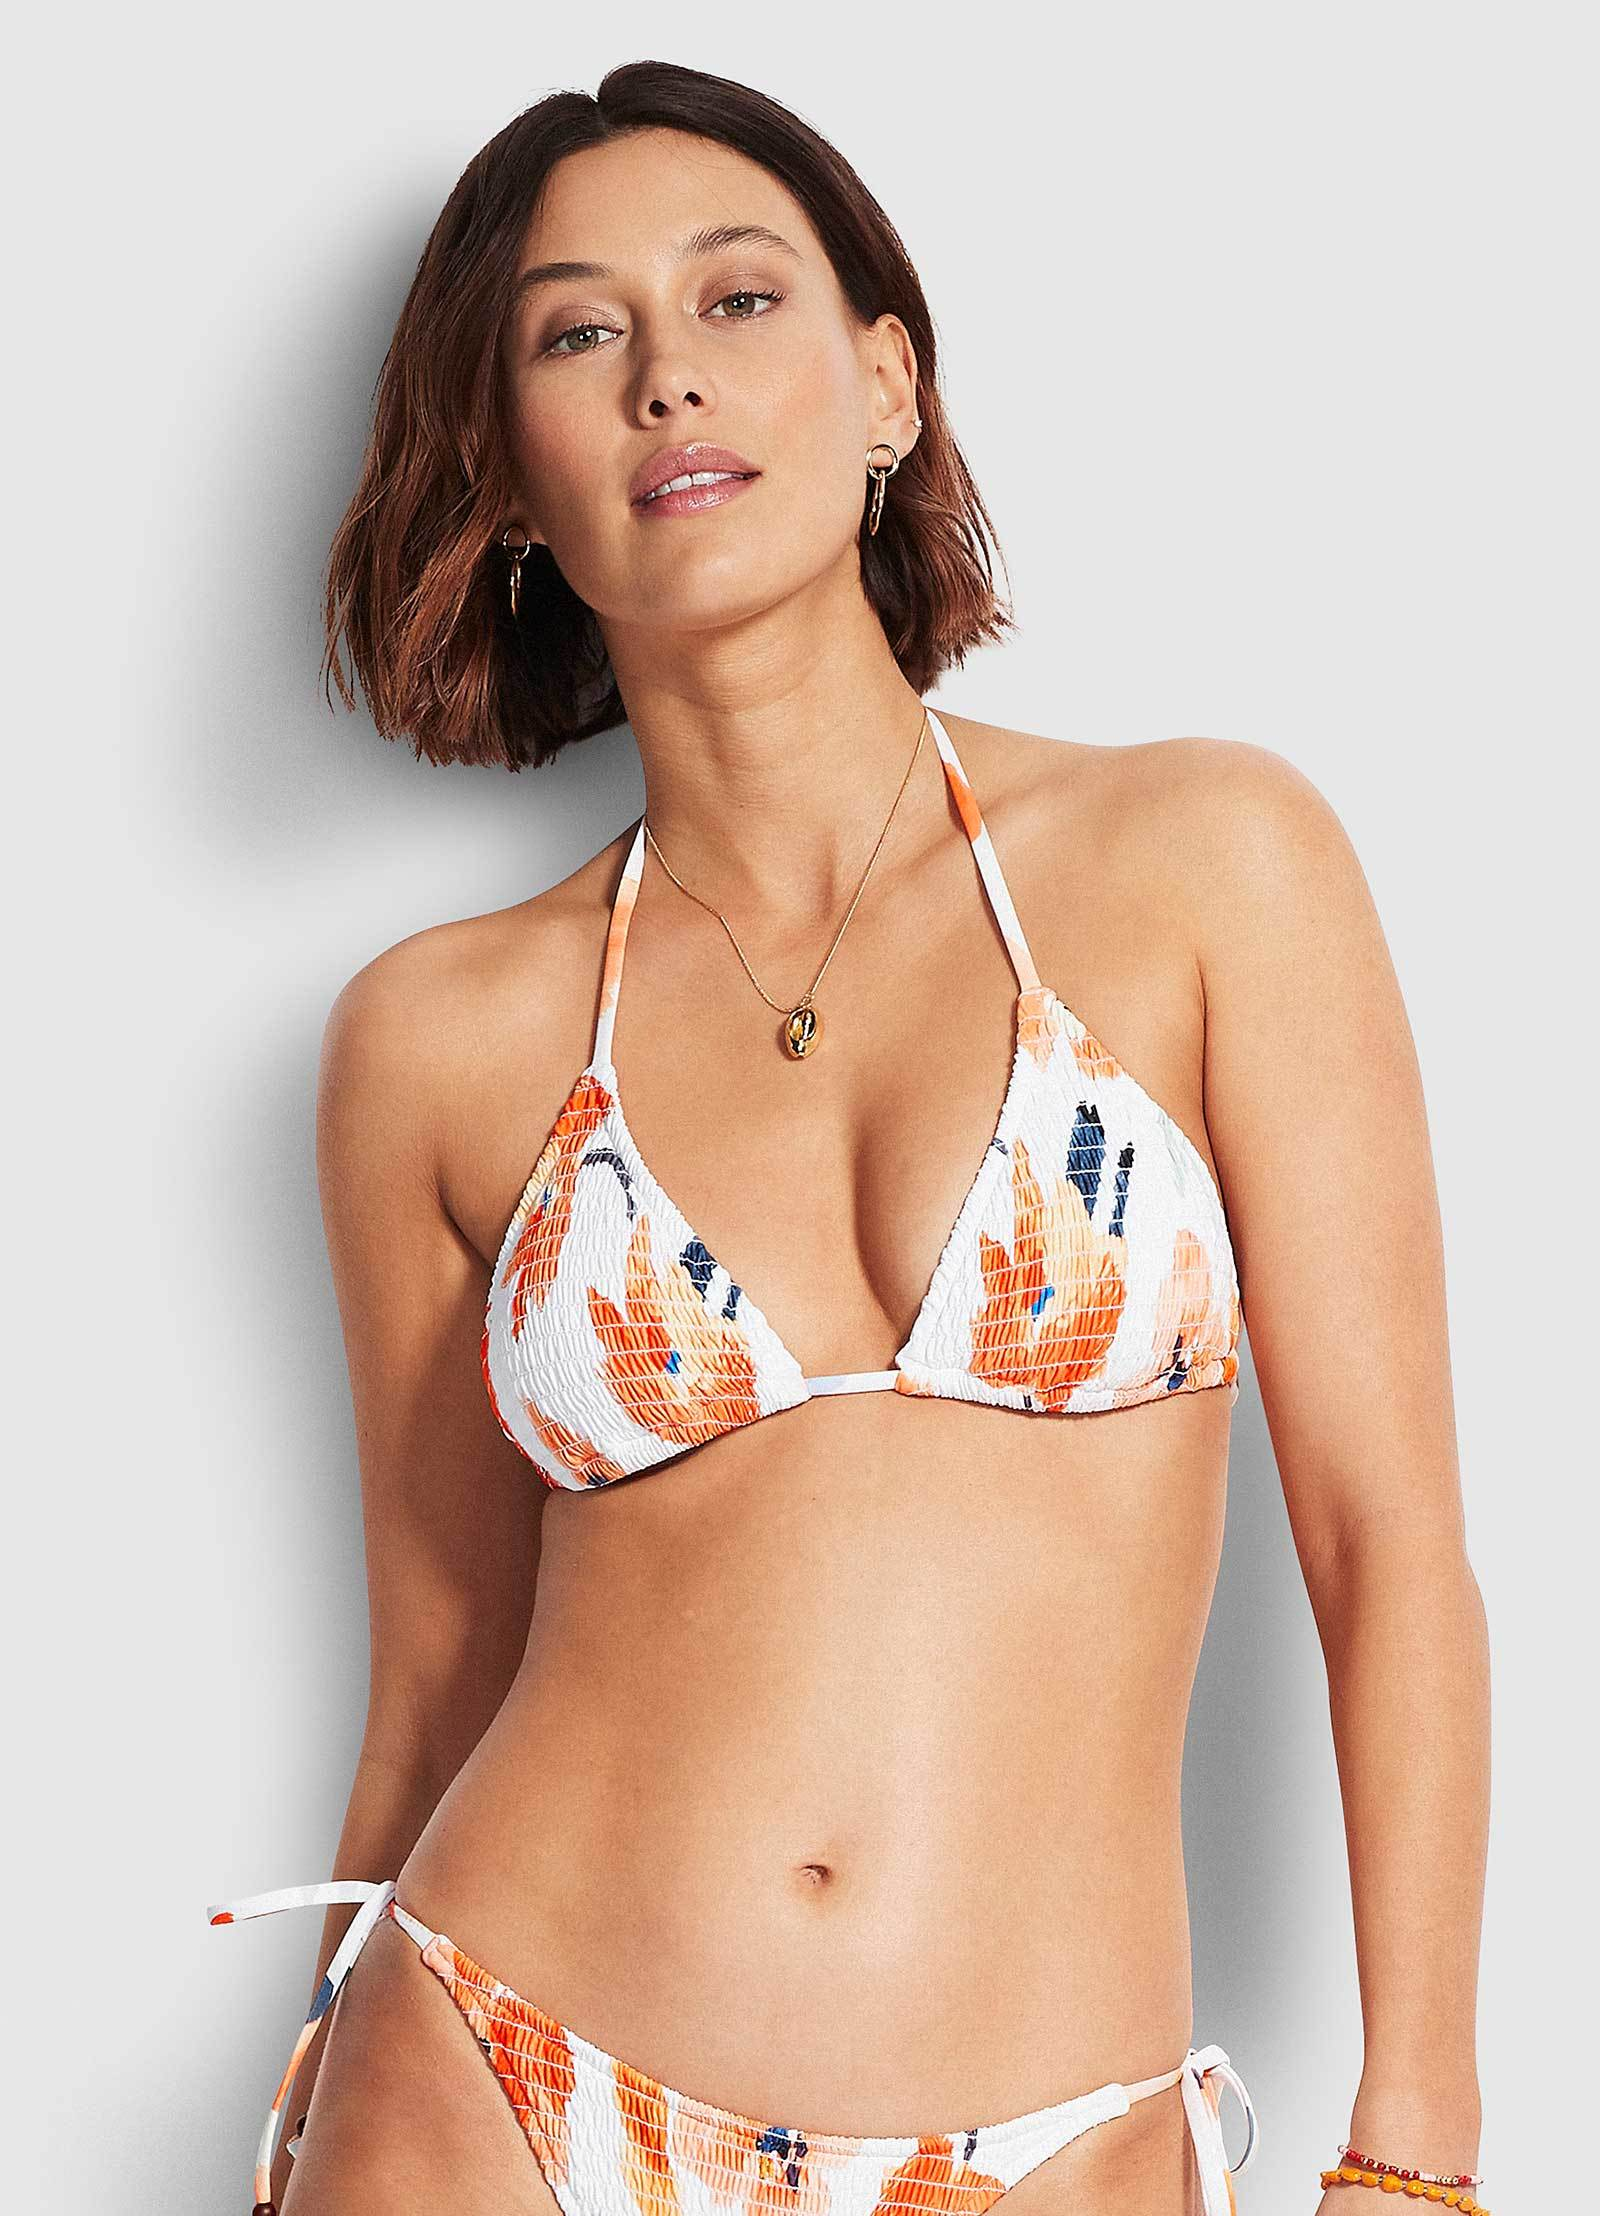 SUMMER MEMOIRS SHIRRED SLIDE TRI by Seafolly, available on 31273-883-White.html for $88 Georgia Fowler Top Exact Product